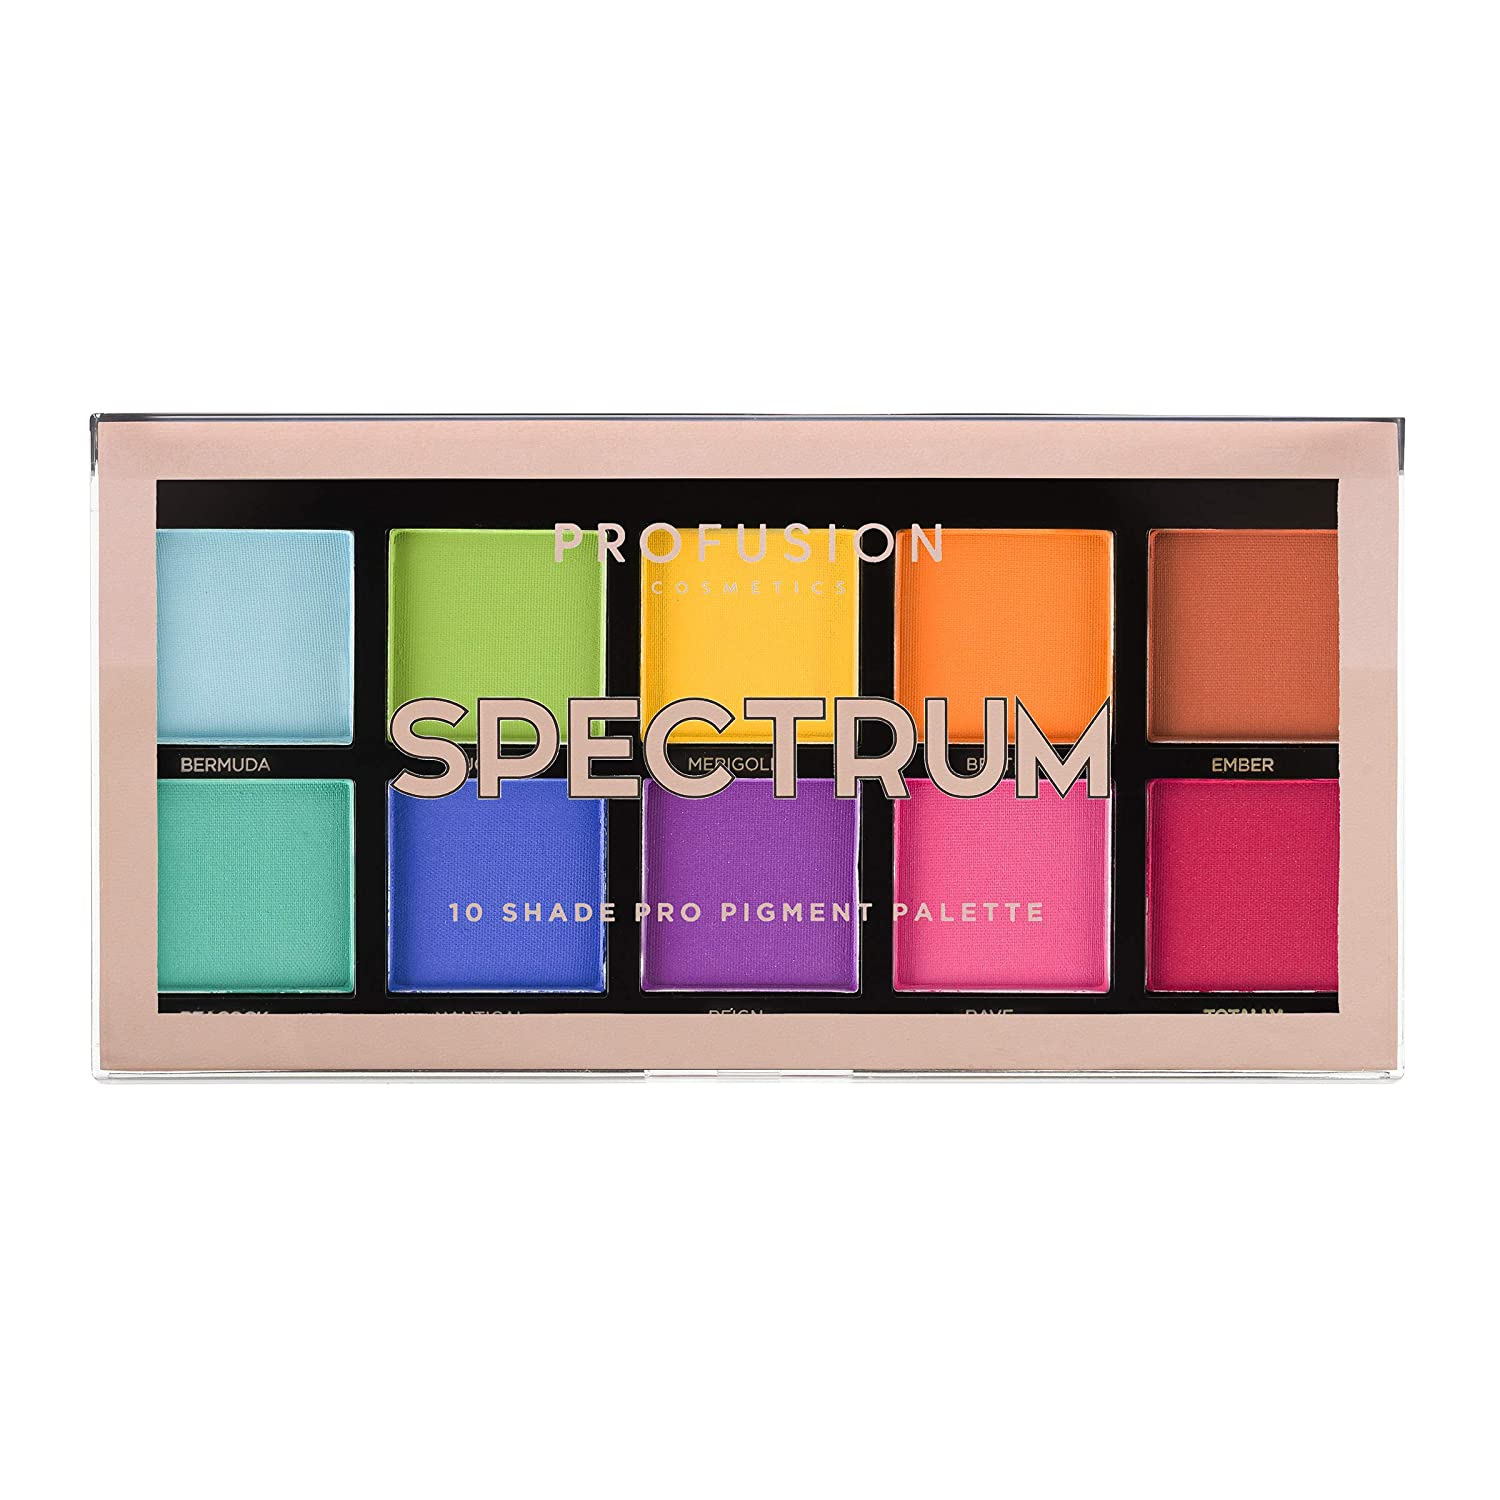 Profusion Cosmetics Mini Artistry 10 Sale item Palette Sp Eyeshadow Shade Free shipping on posting reviews